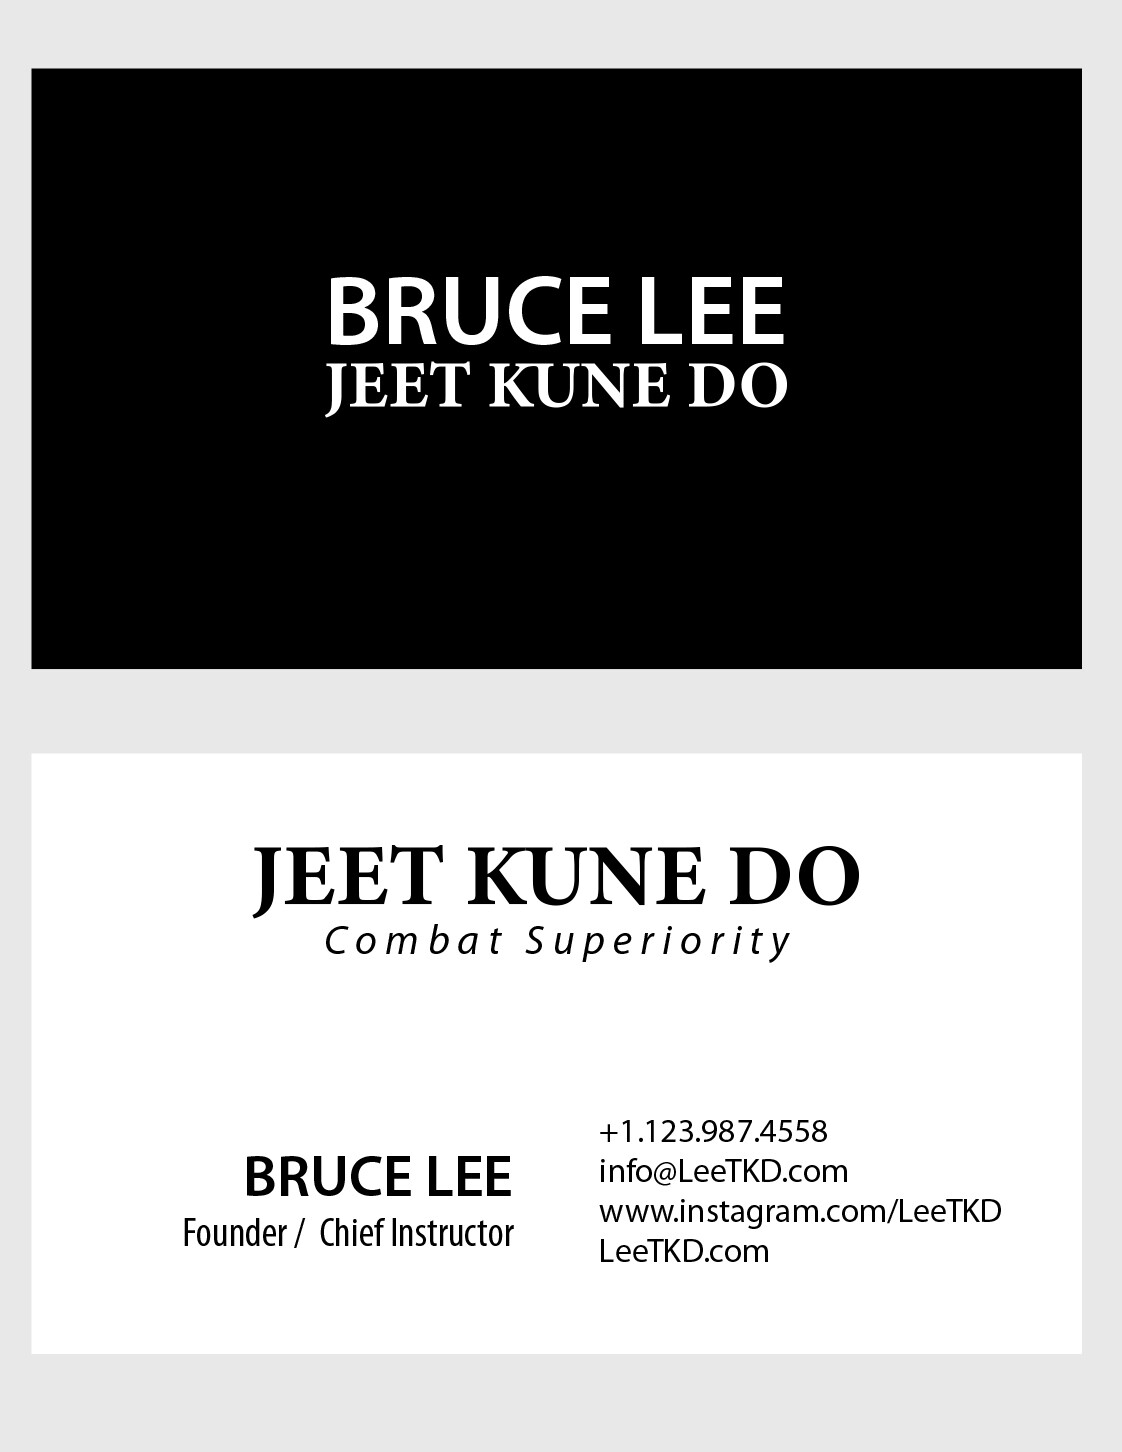 Business Card Layout.  Class project